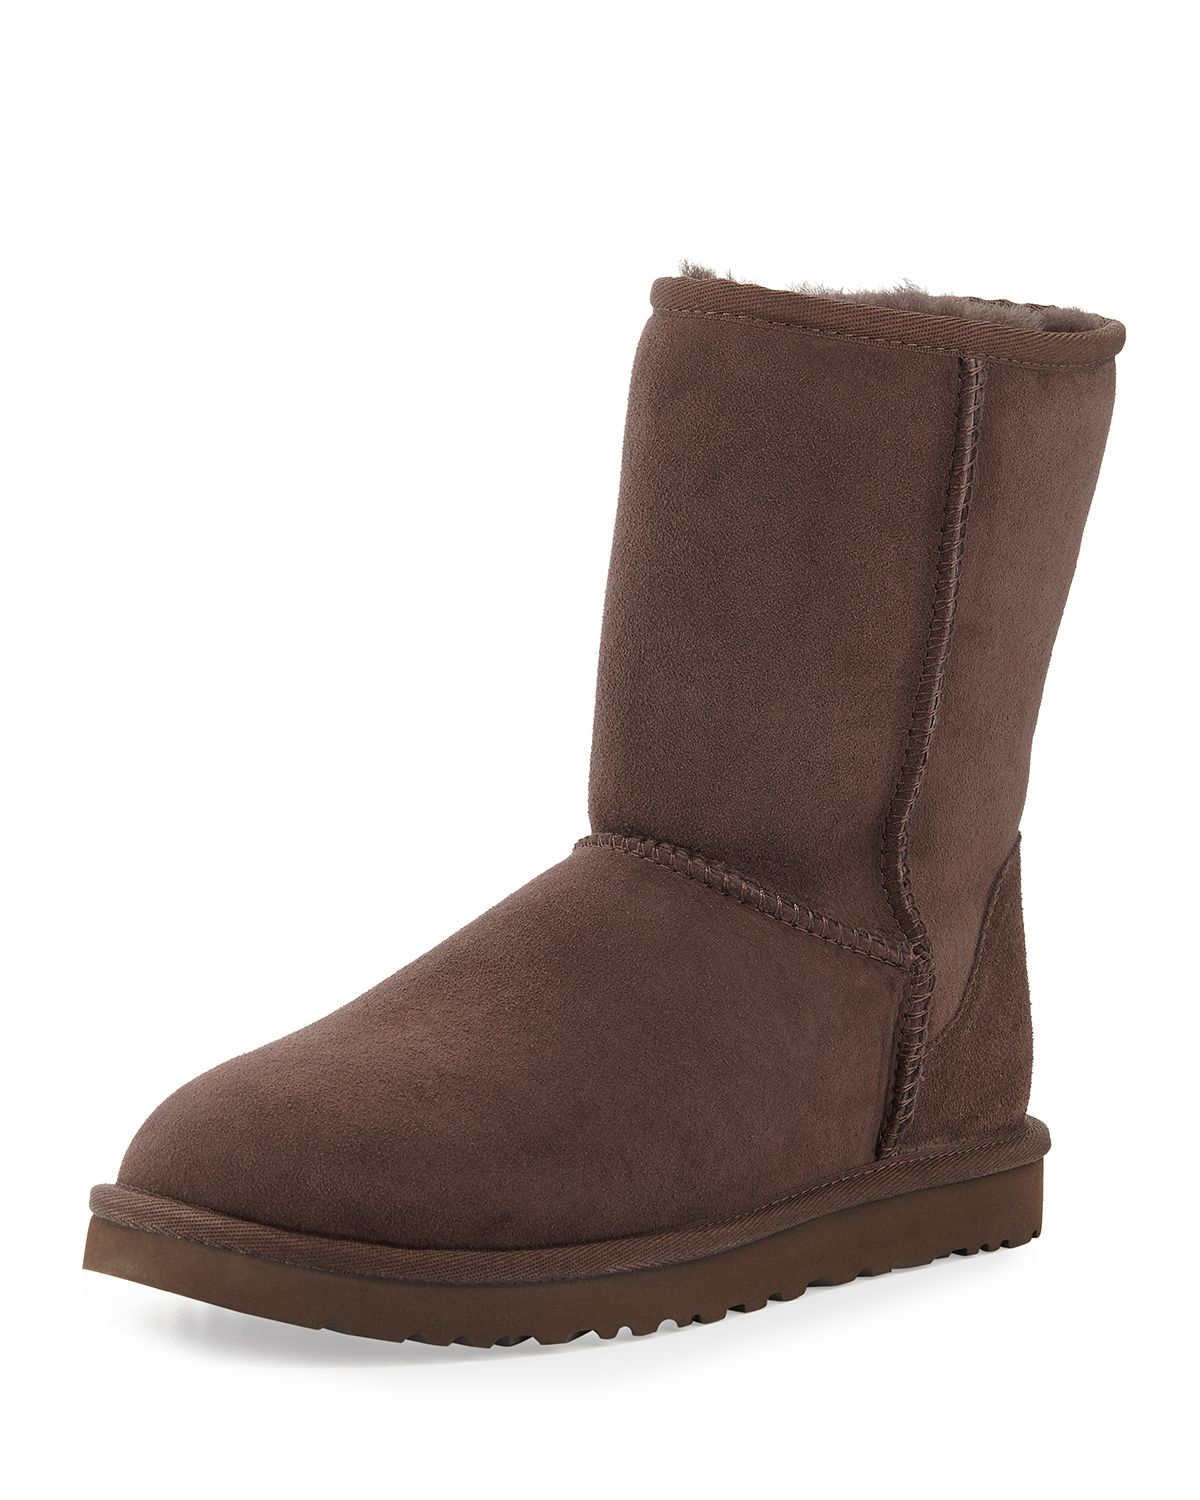 ugg classic short suede boot in brown lyst. Black Bedroom Furniture Sets. Home Design Ideas